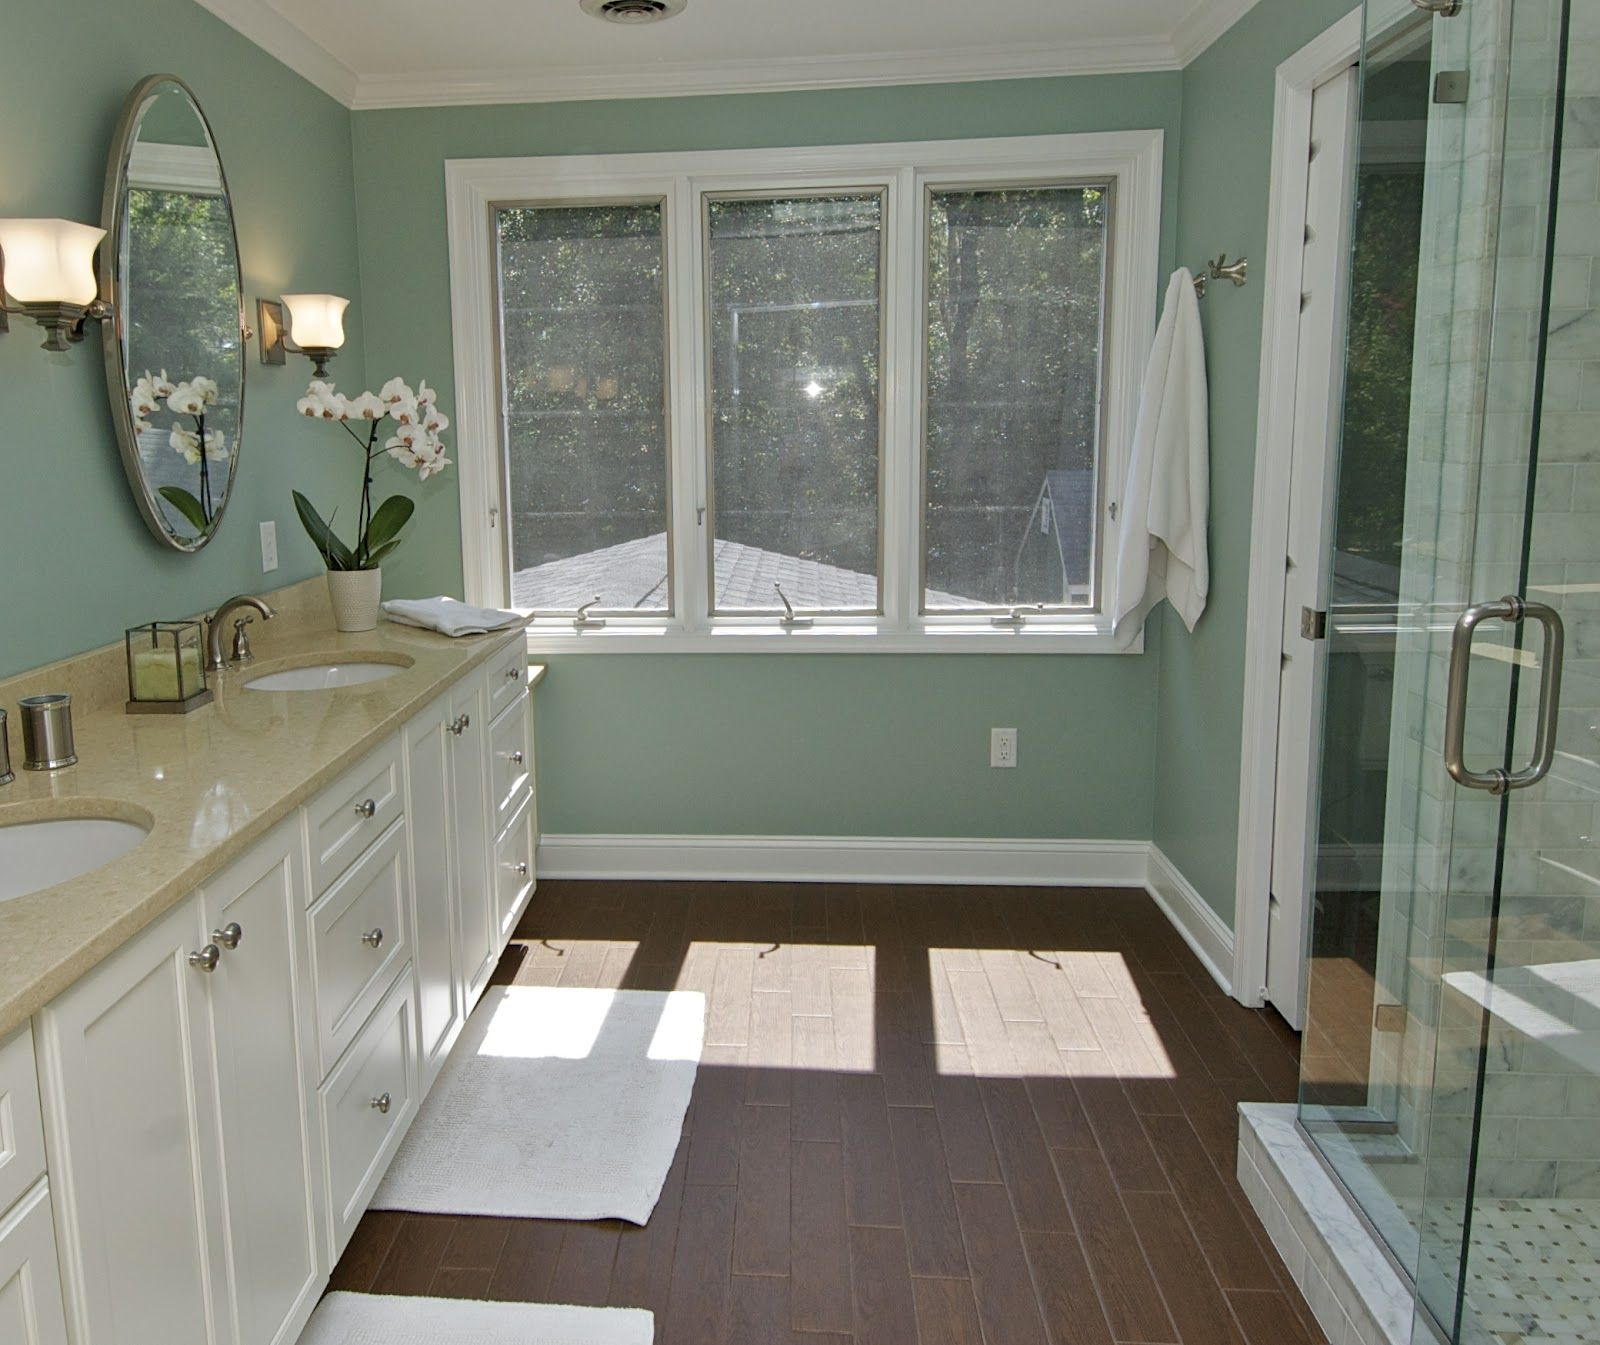 tile corners pictures baseboard edges in edging bath ideas or metal wall of edge trim kit shower and bathroom wood tiles ceramic